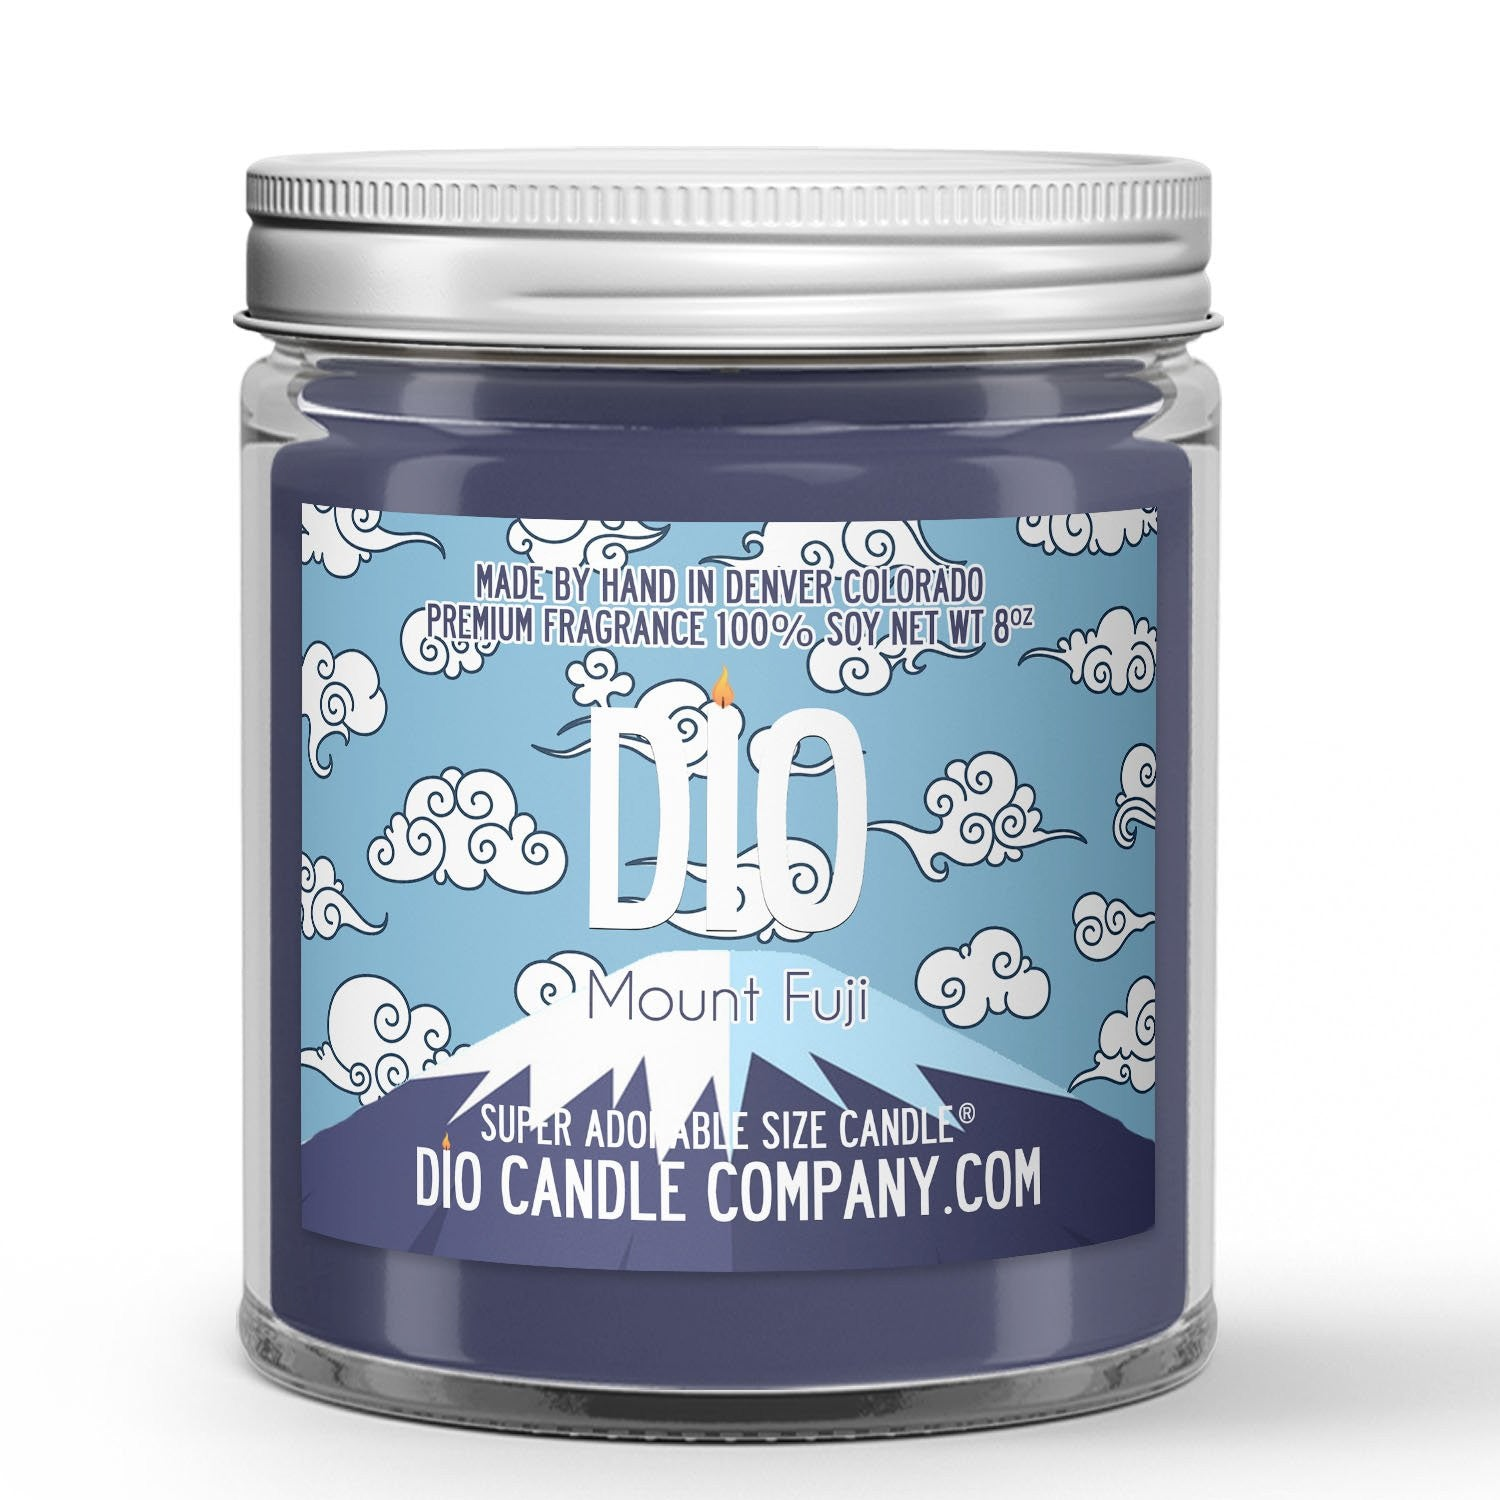 Mount Fuji Candle - Cypress - Snow - 8oz Super Adorable Size Candle® - Dio Candle Company